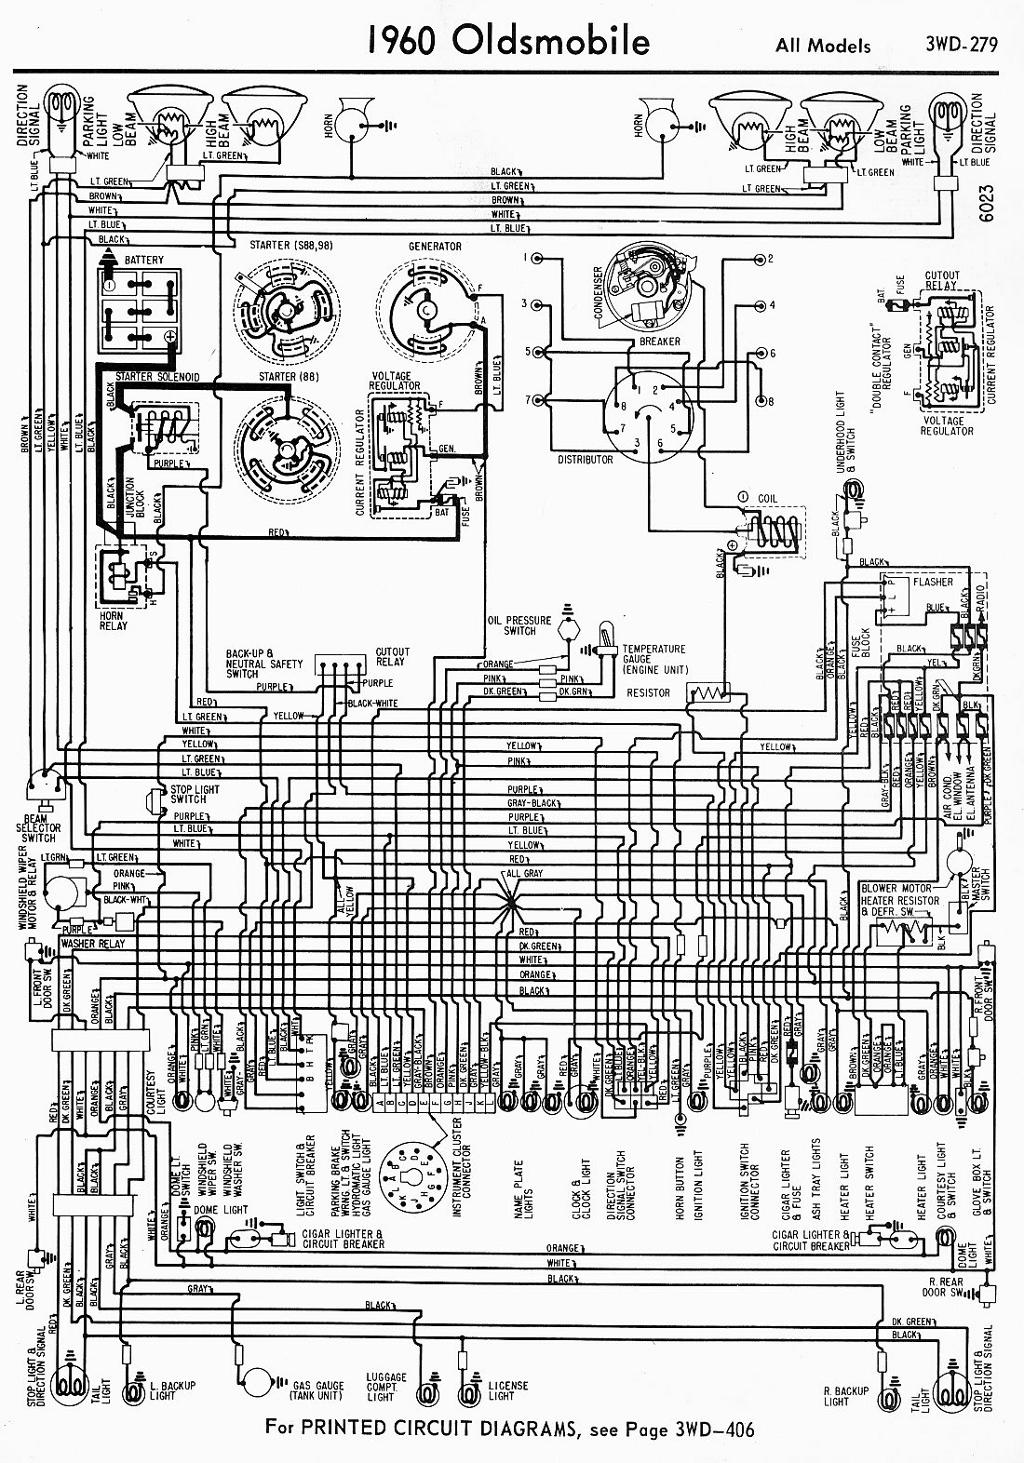 1950 Cadillac Wiring Schematic Library Engine Compartment Light Diagram For 1953 Studebaker Champion And Commander 1957 Oldsmobile Enthusiast Diagrams U2022 65